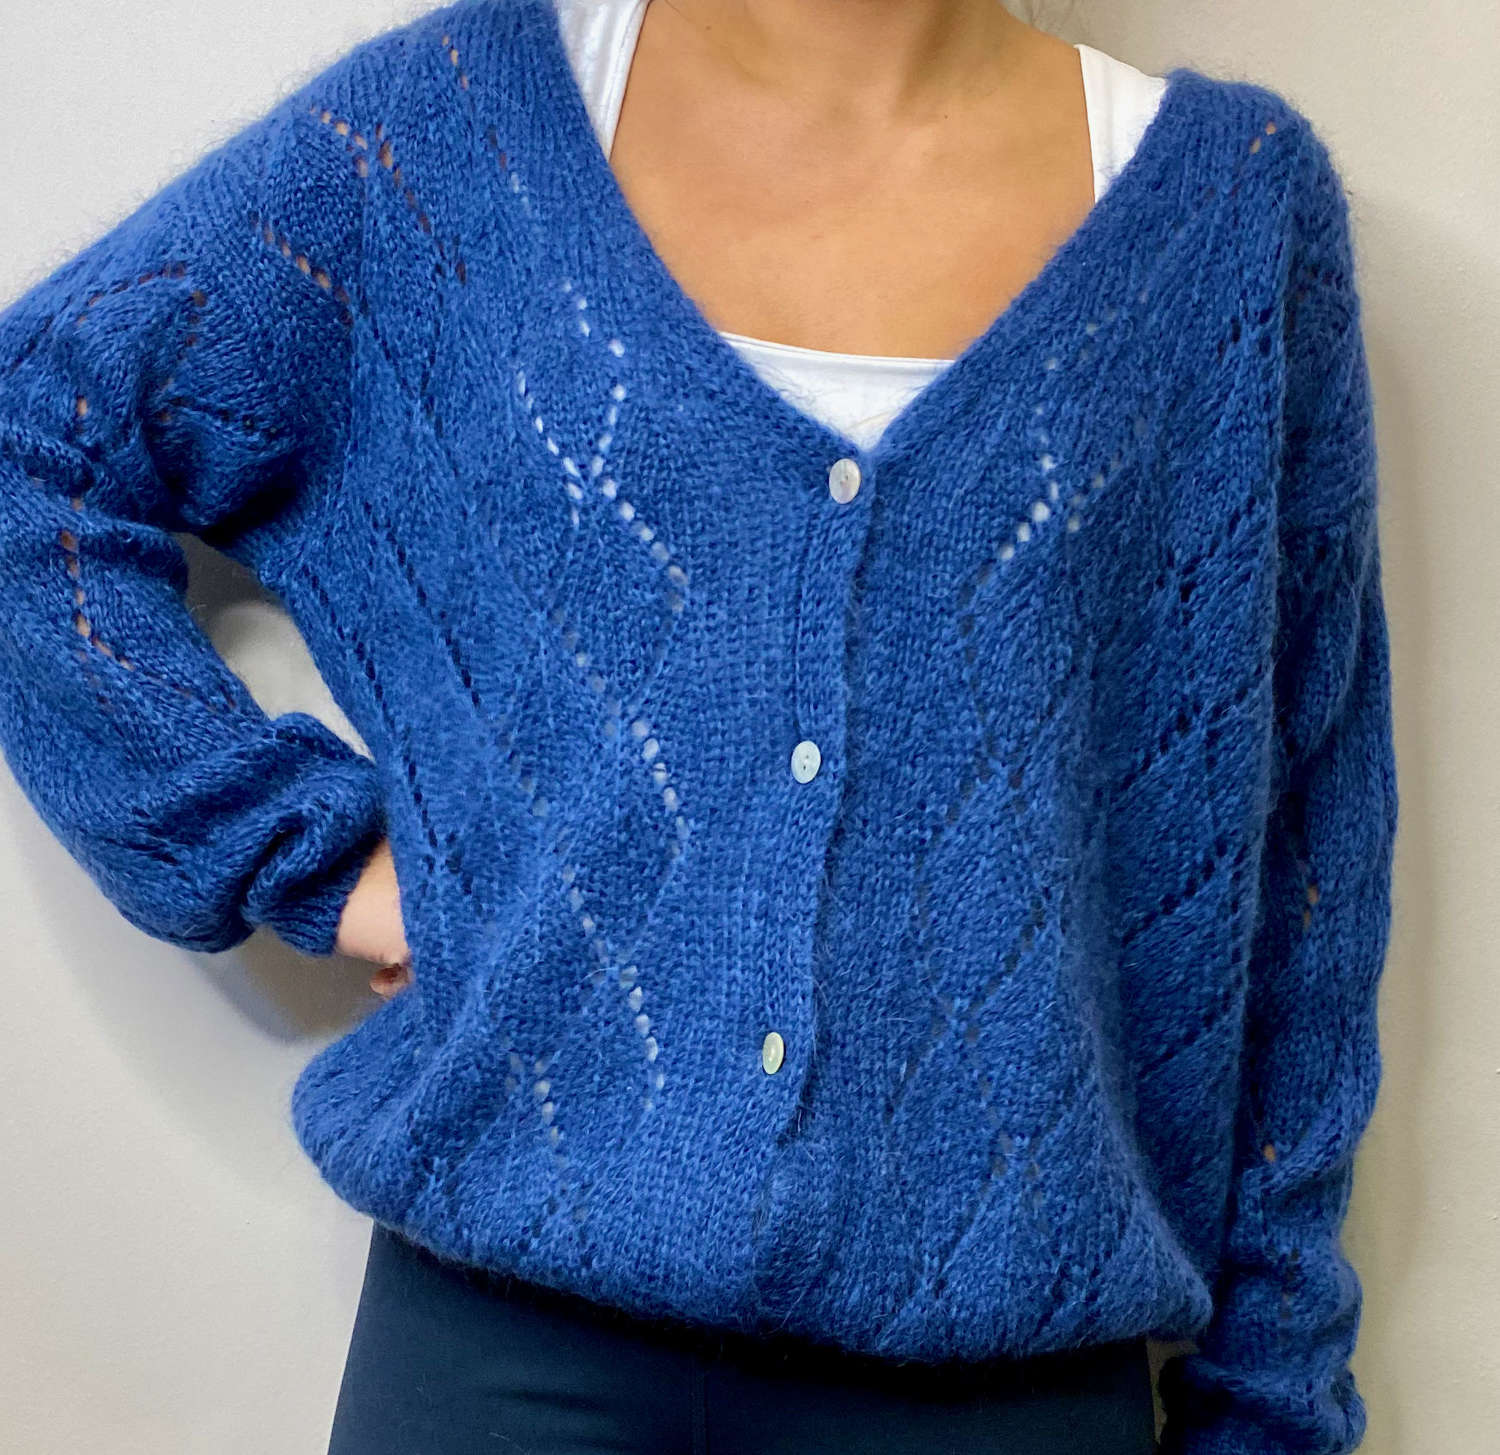 Mohair mix Cardigan - Cobalt blue